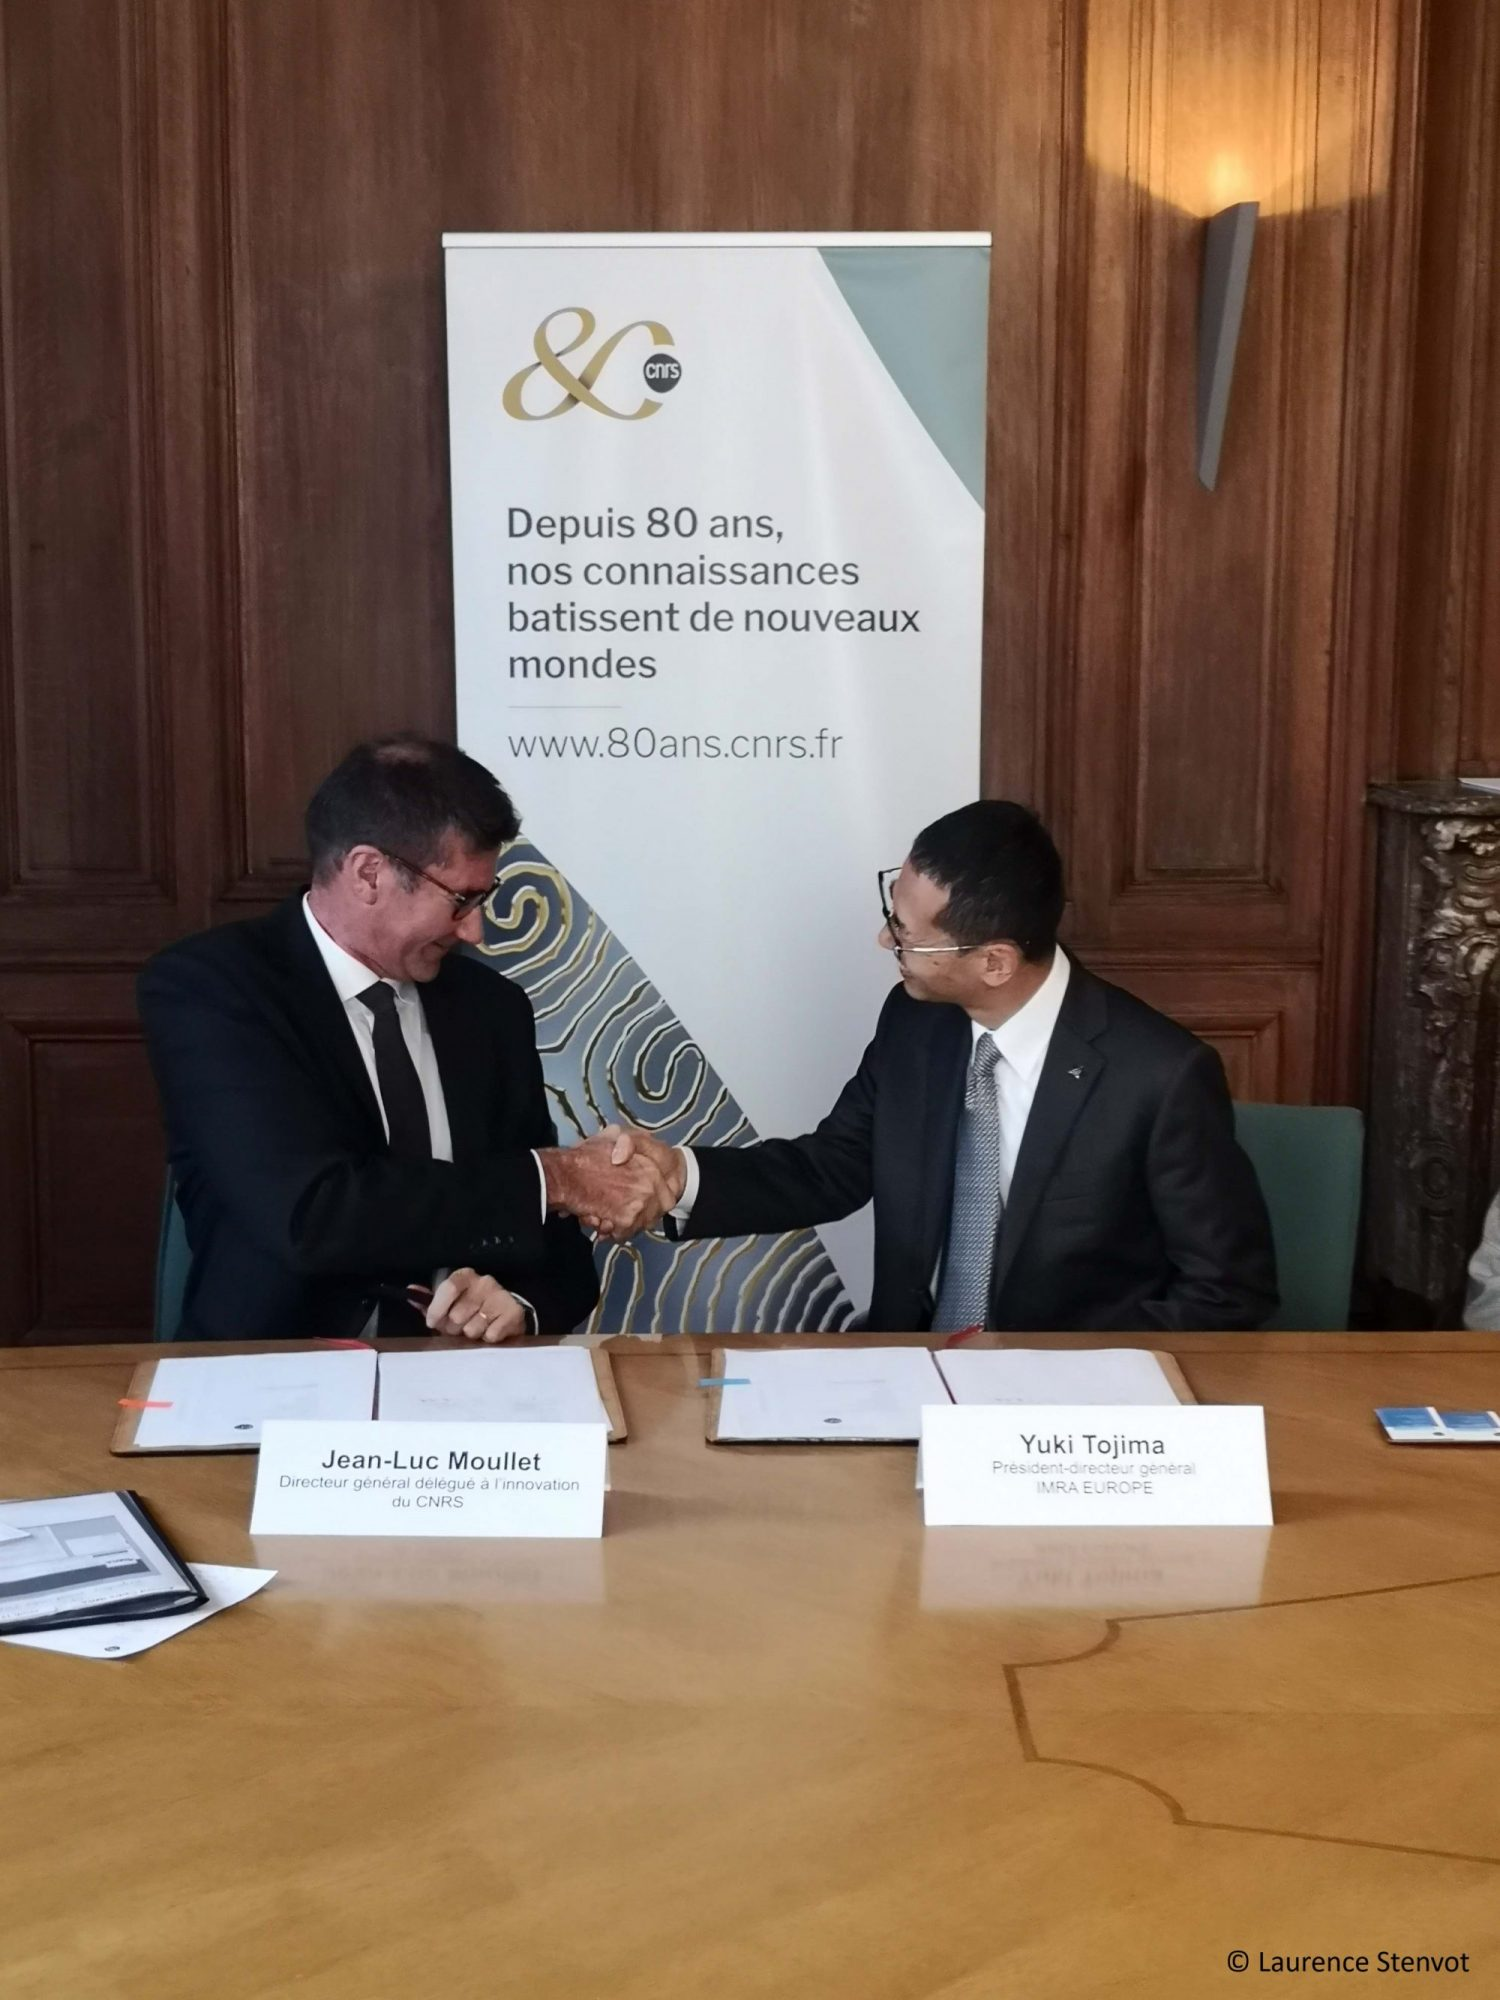 IMRA and the CNRS sign a collaborative Framework Agreement